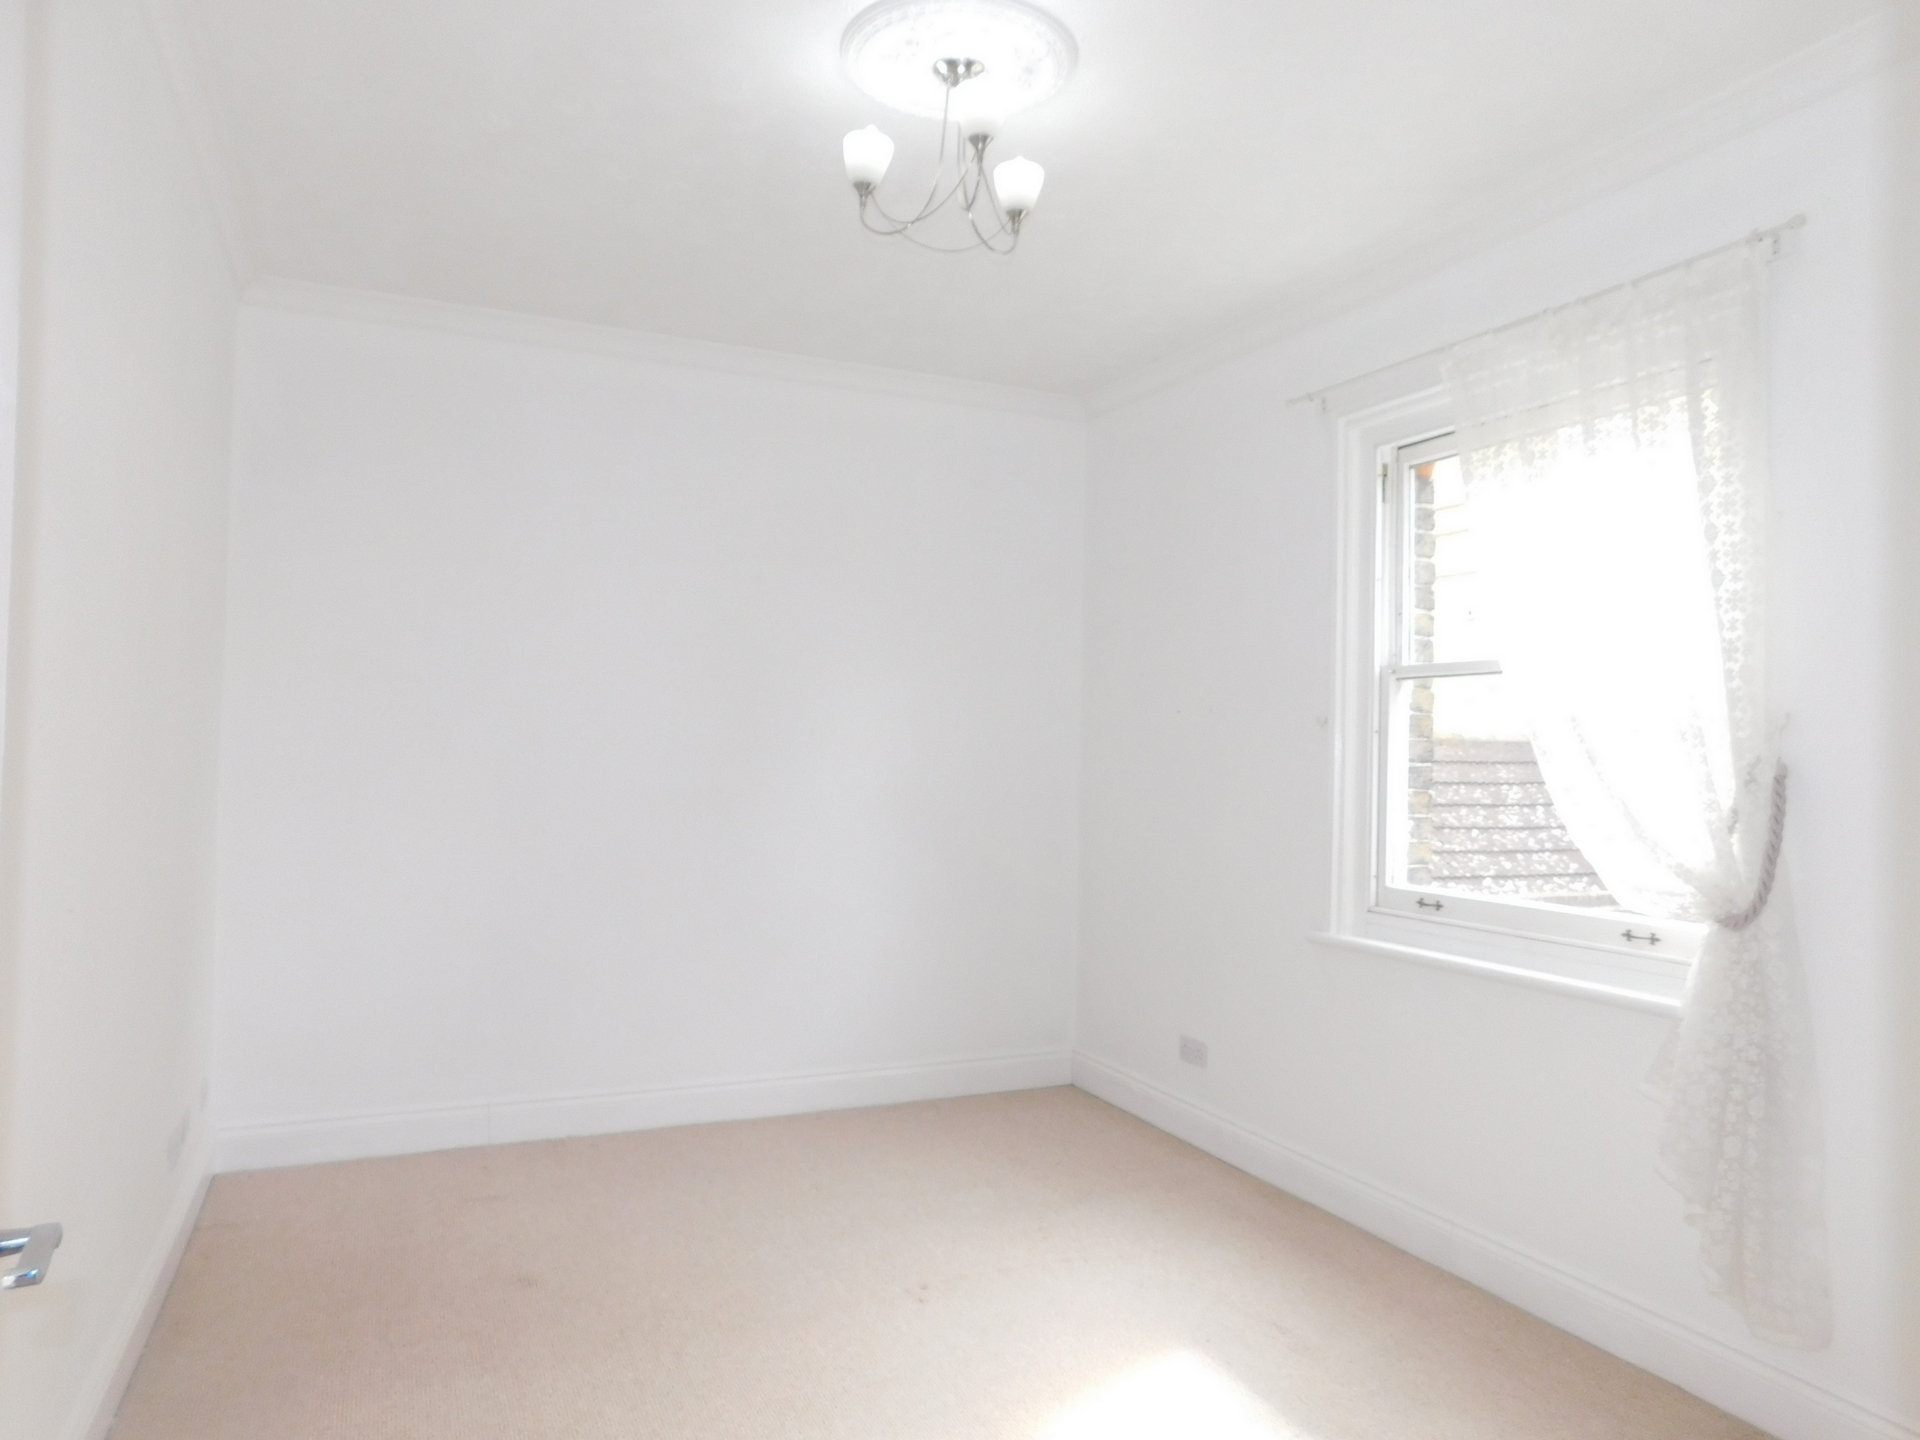 2 bed flat to rent in Westgate Bay Avenue, Westgate, CT8 2